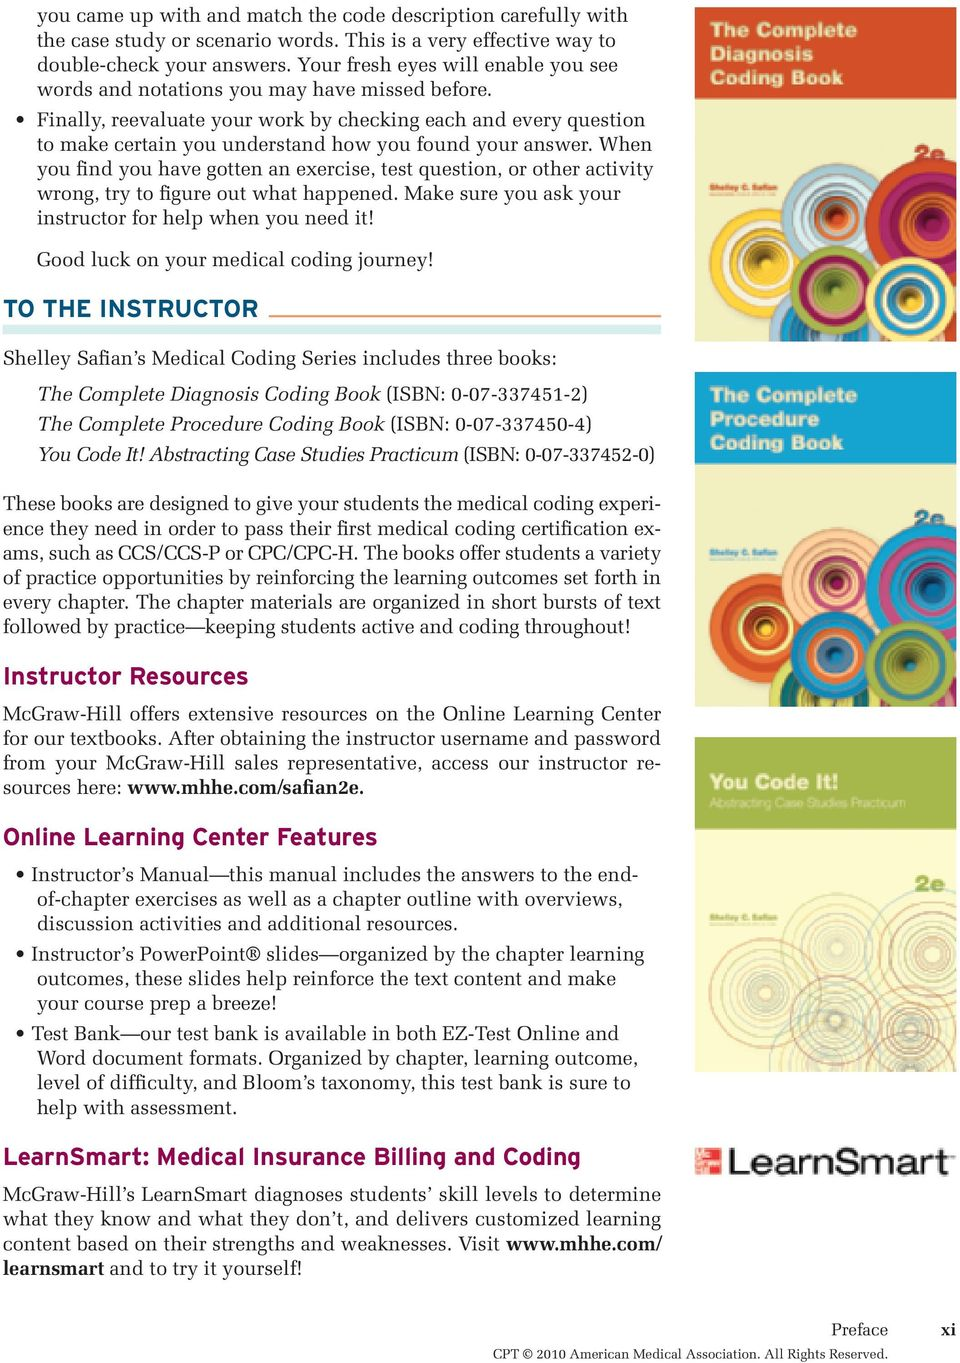 Old Fashioned Mcgraw Hill Online Learning Center Anatomy And ...